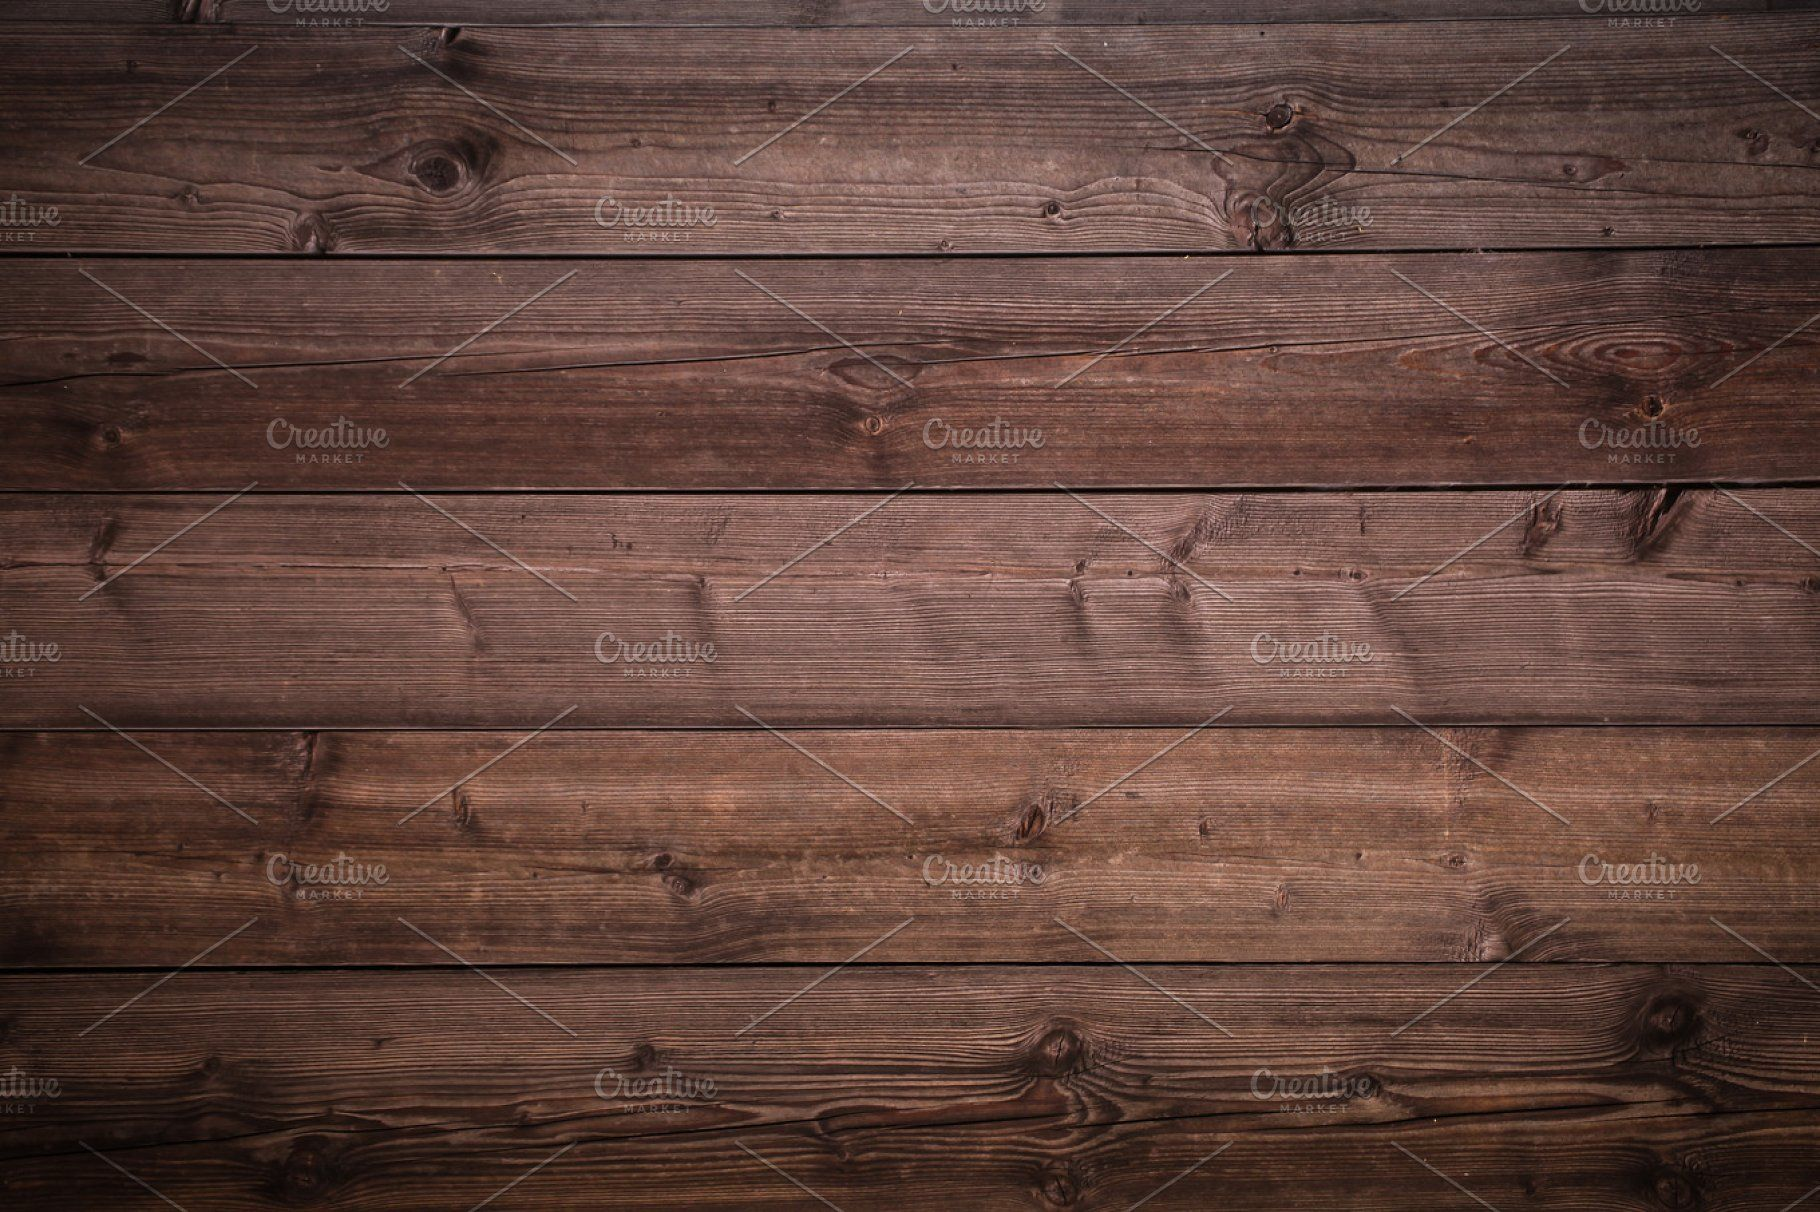 Ad: Vintage Wood Background Texture 122 by RSQB - CreativeThings Co. on @creativemarket. This is one of my shots from 400 years old farmhouses. Natural surface of Wood Texture Background. Top view. That will give your design that #creativemarket #woodtexturebackground Ad: Vintage Wood Background Texture 122 by RSQB - CreativeThings Co. on @creativemarket. This is one of my shots from 400 years old farmhouses. Natural surface of Wood Texture Background. Top view. That will give your design that # #woodtexturebackground